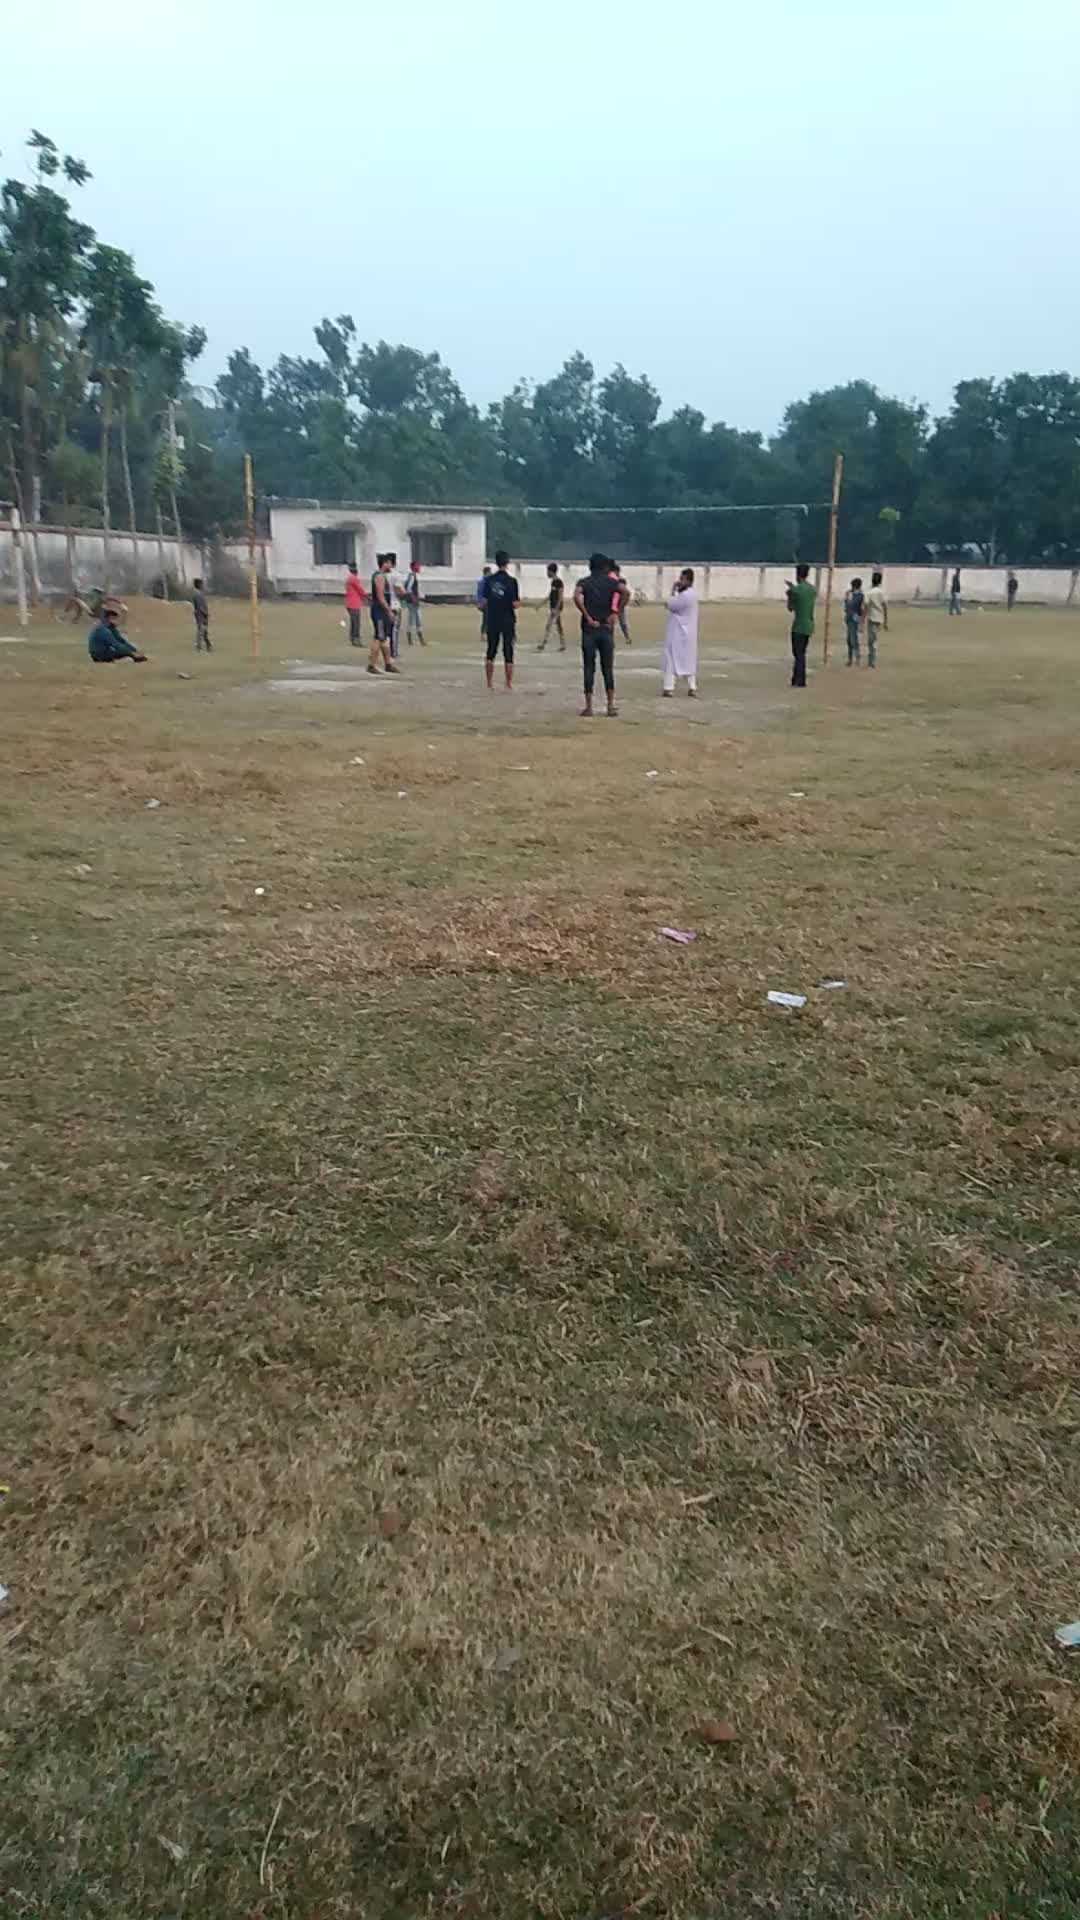 Video footage of volleyball and cricket?